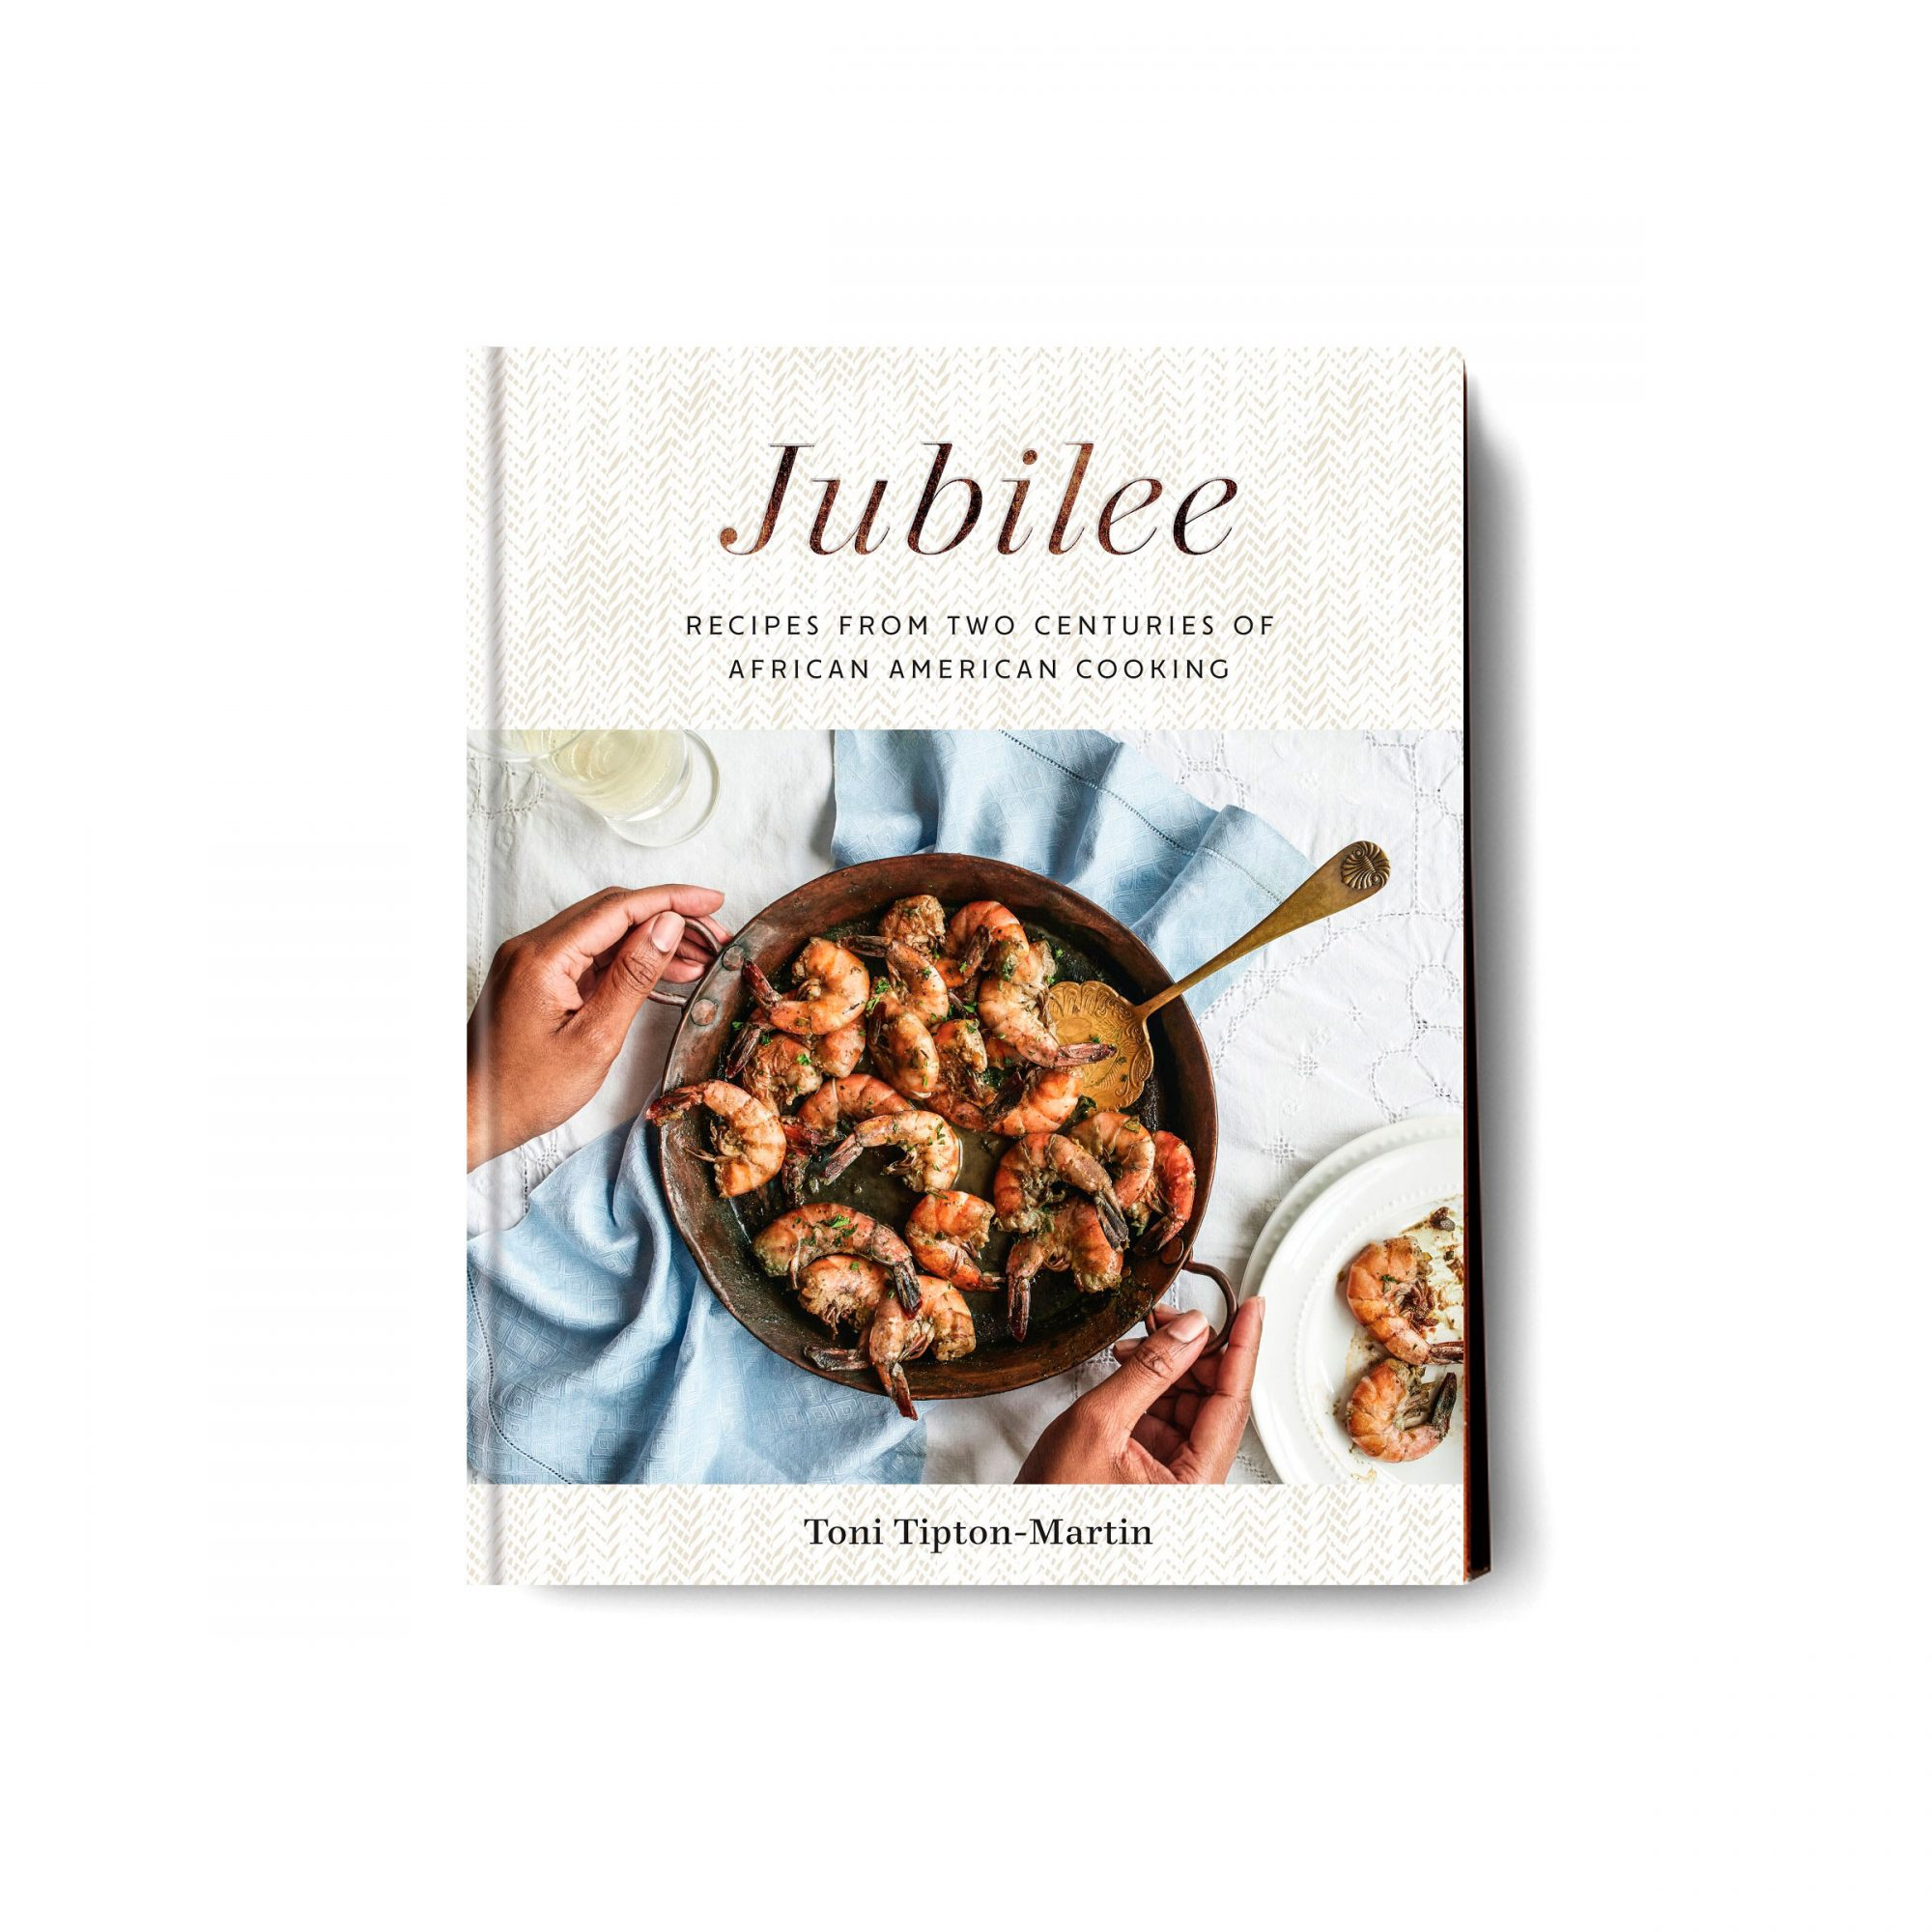 Jubilee: Recipes from Two Centuries of African American Cooking